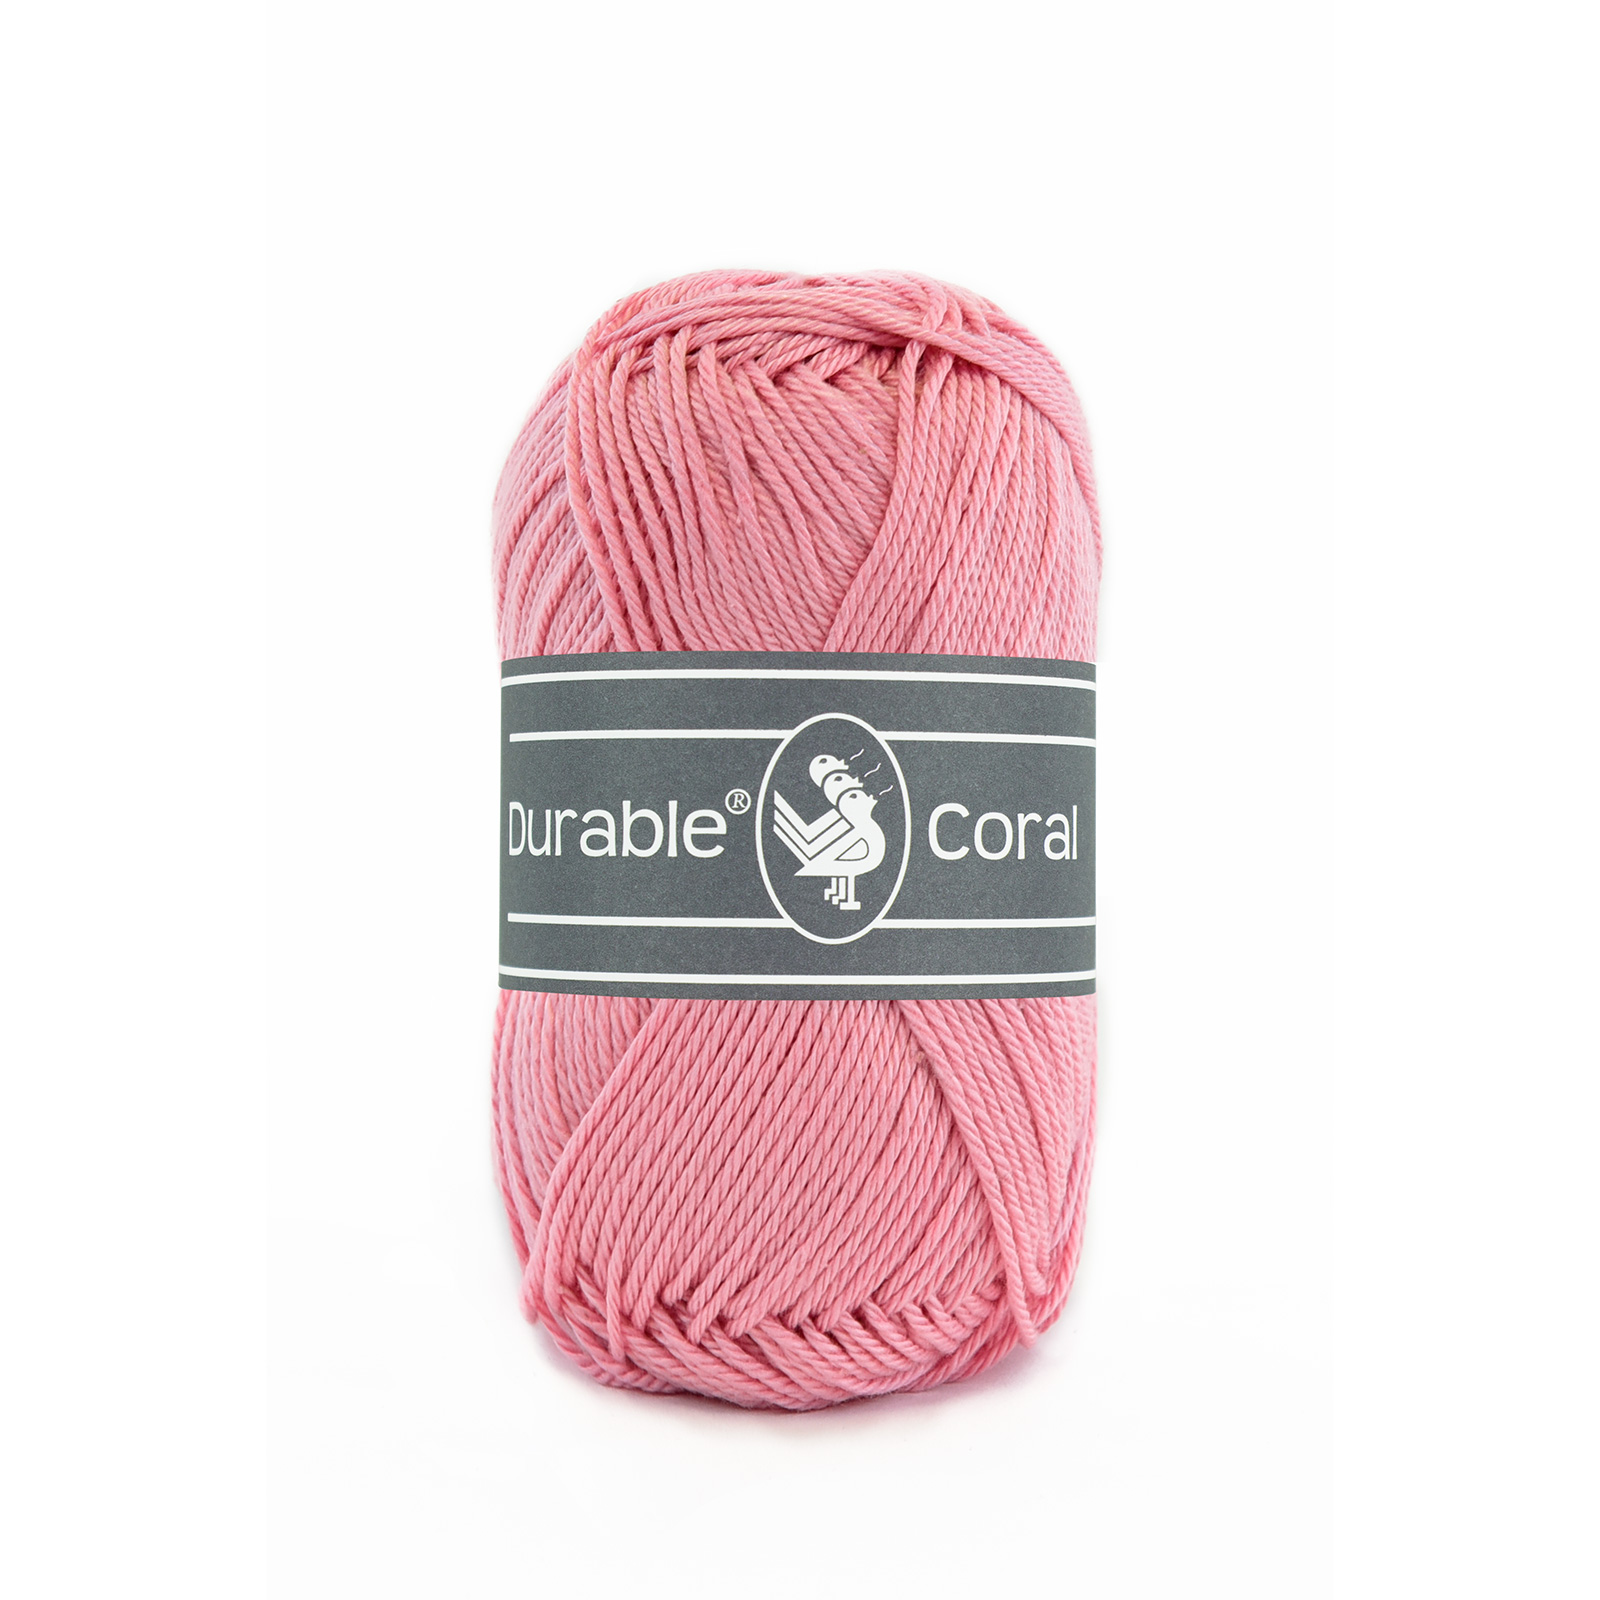 Durable Coral – 227 Antique pink